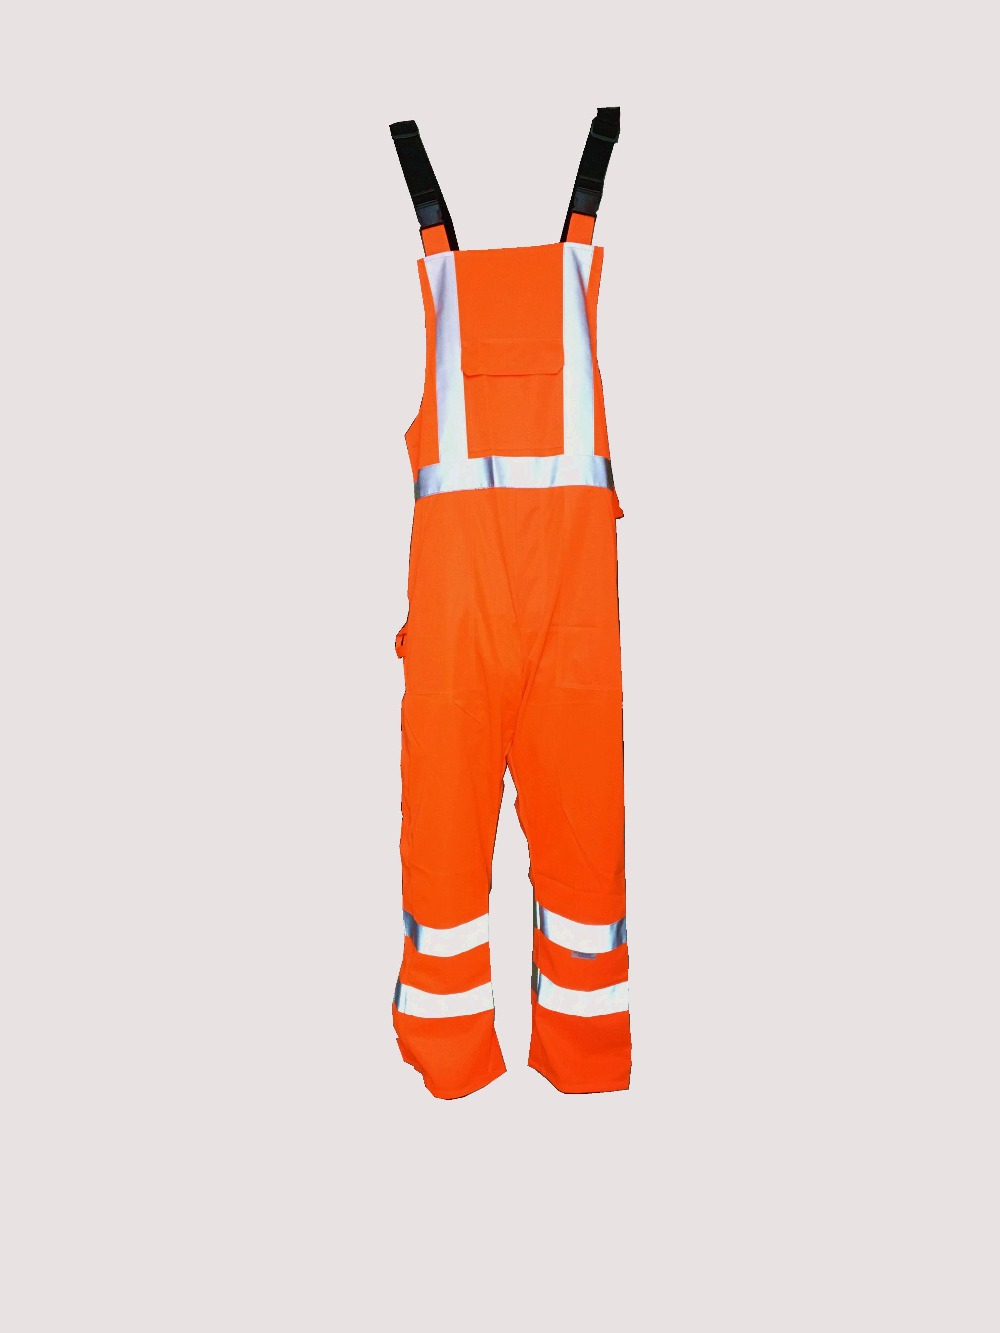 High Quality Fluorescence Orange High Visibility Safety Overall Hi Viz Reflective Workwear ccgk safety clothing reflective high visibility tops tee quick drying short sleeve working clothes fluorescent yellow workwear